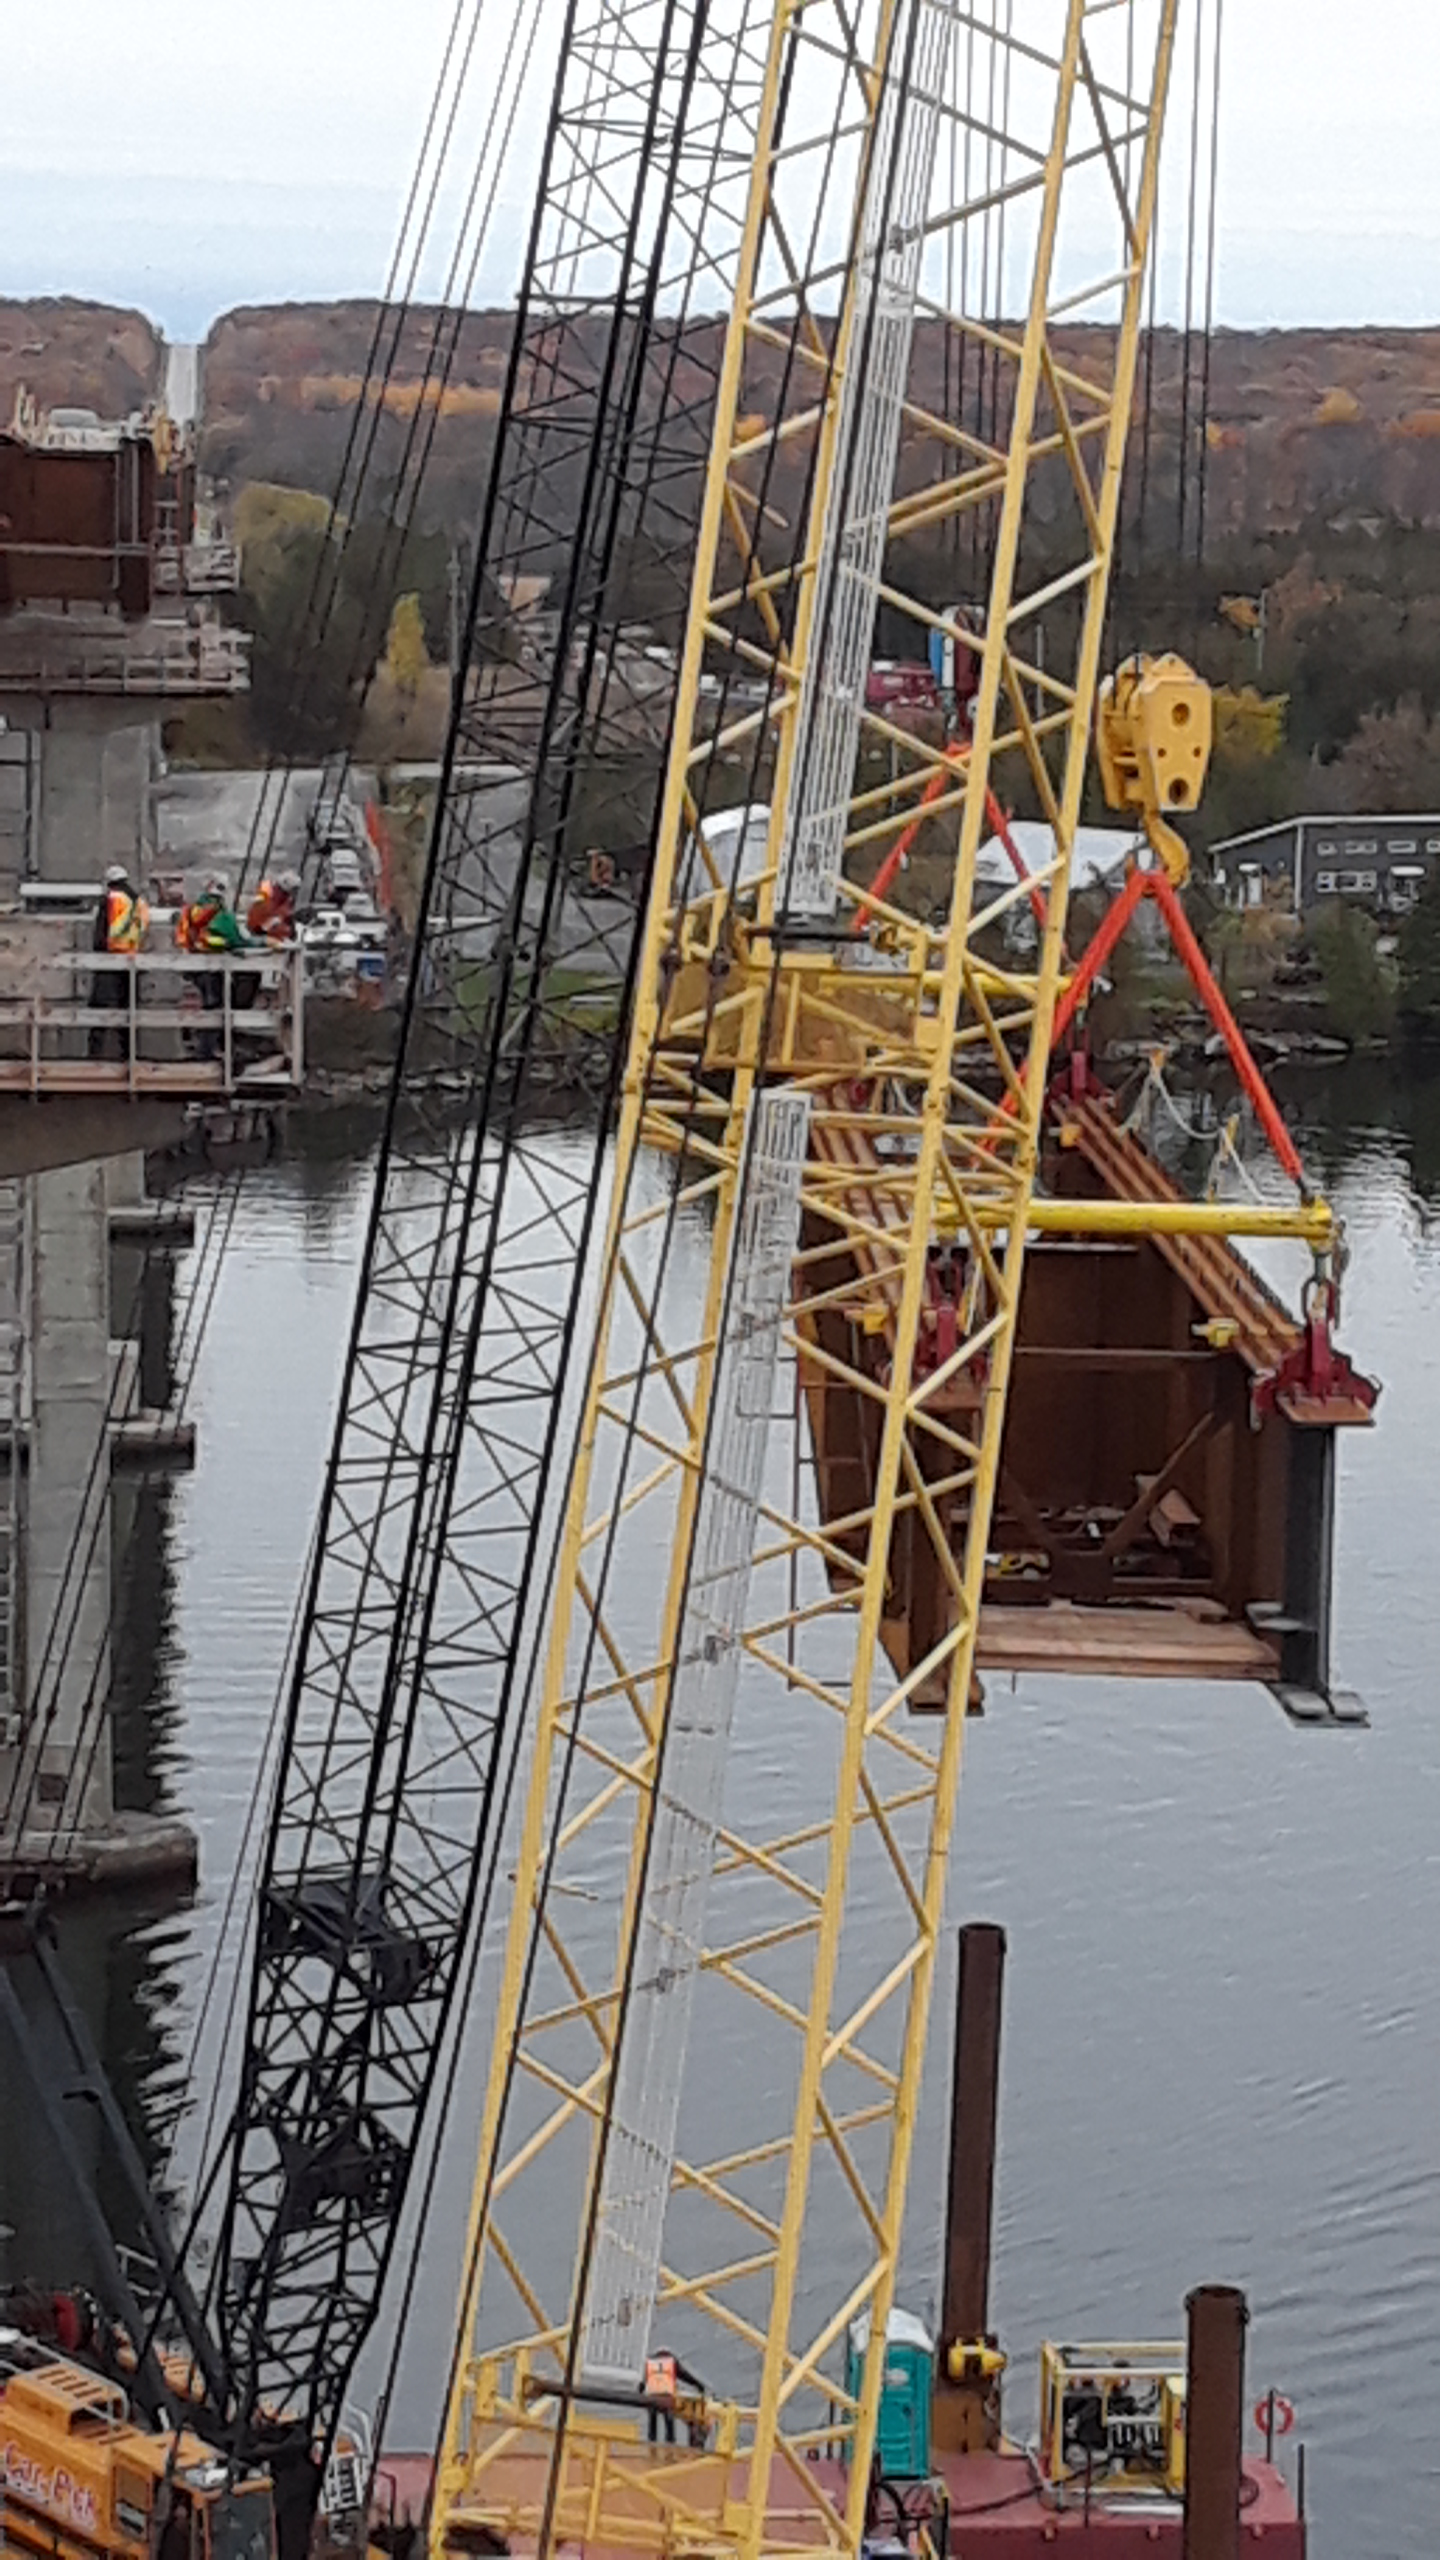 Second Hammer Head girder being lifted into place